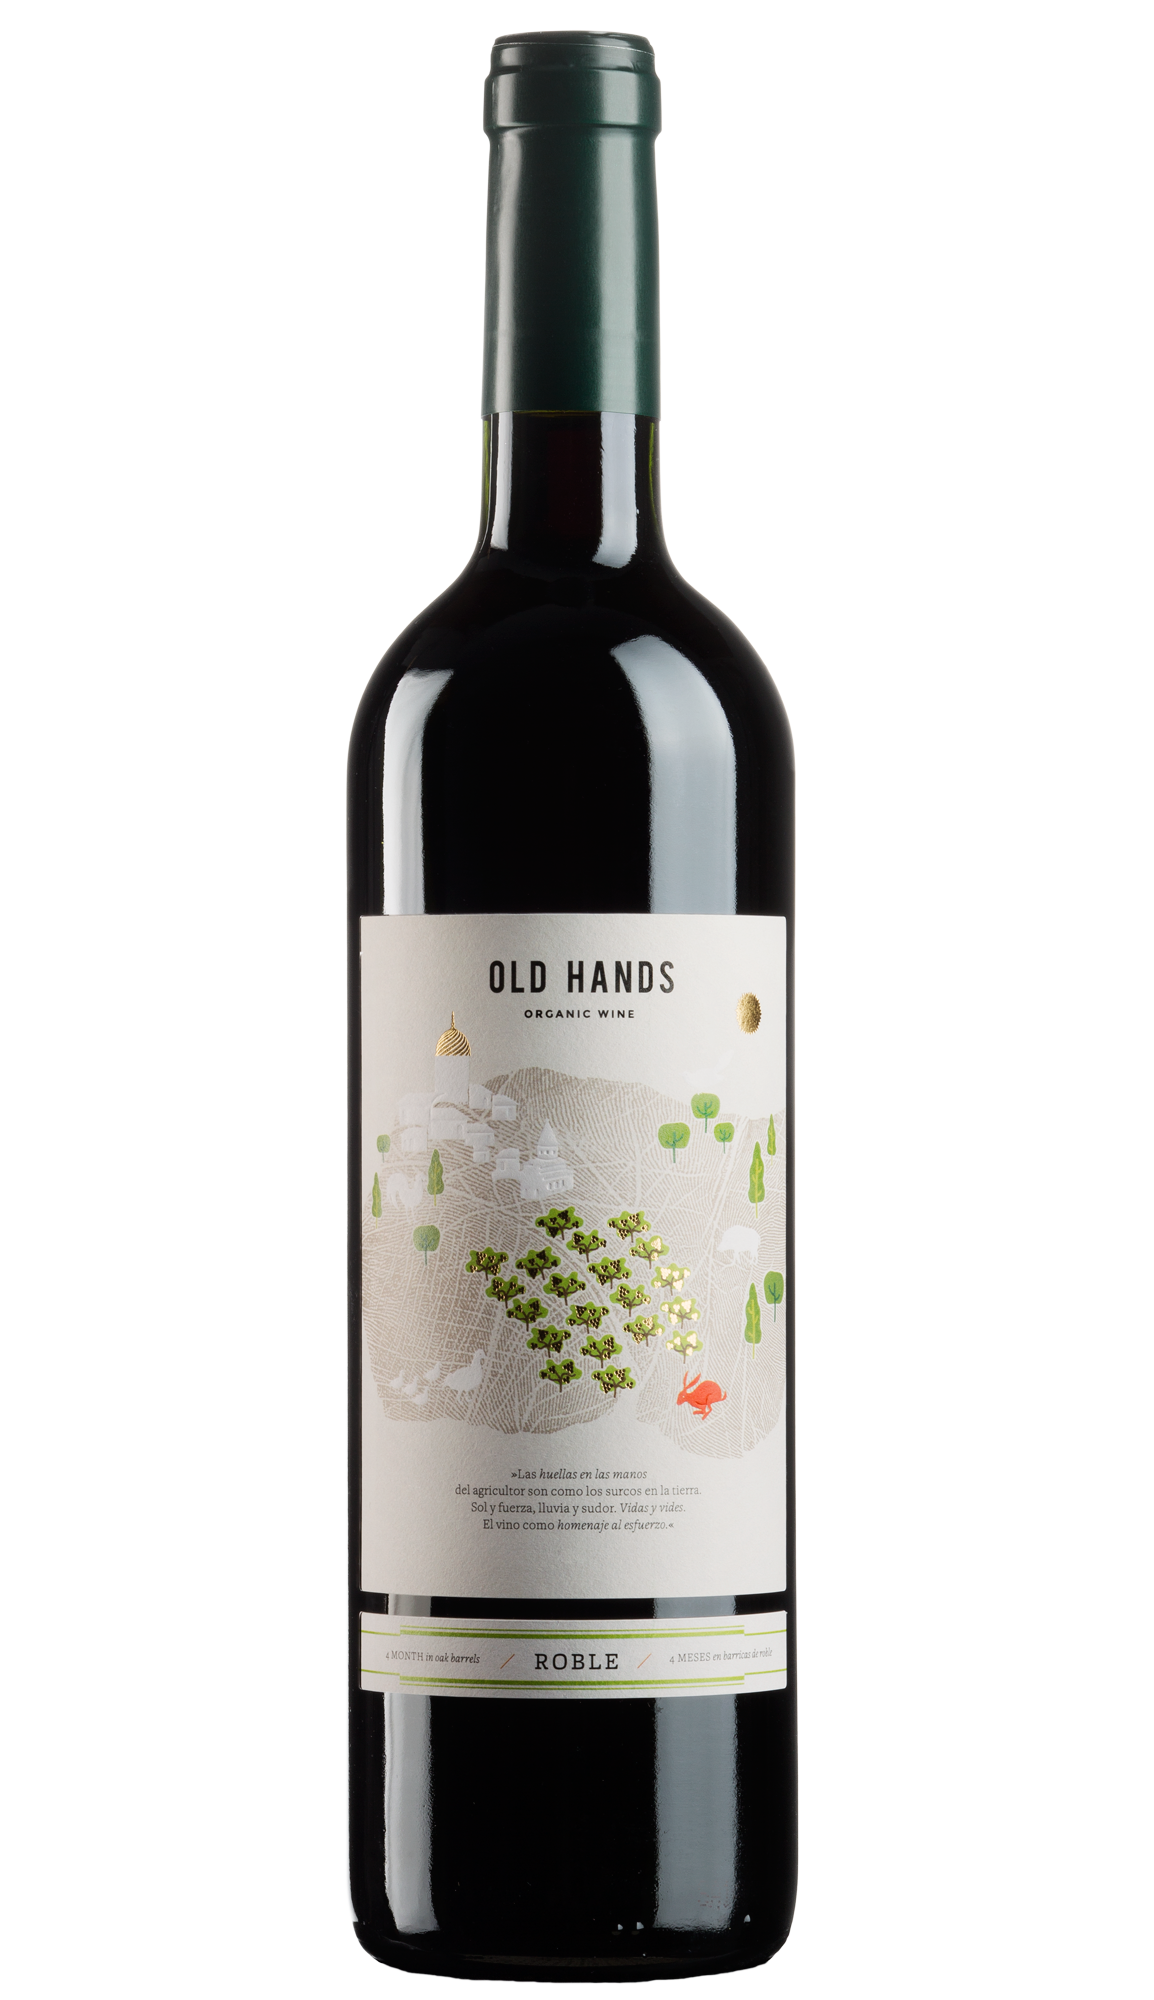 Old Hands Roble